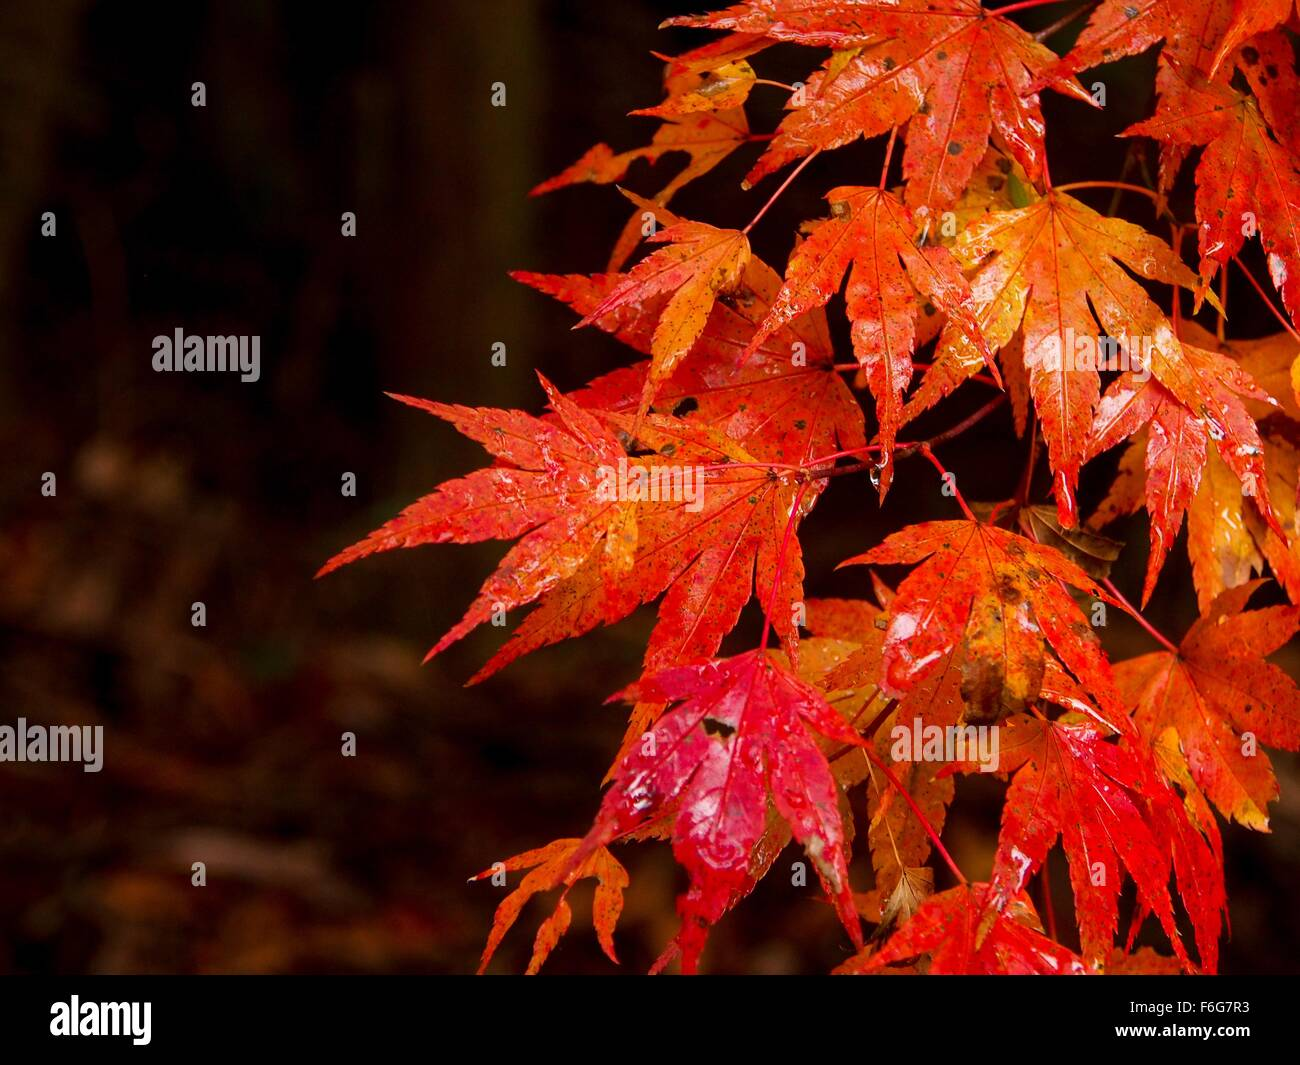 Close up of autumn leaves in the rain Stock Photo